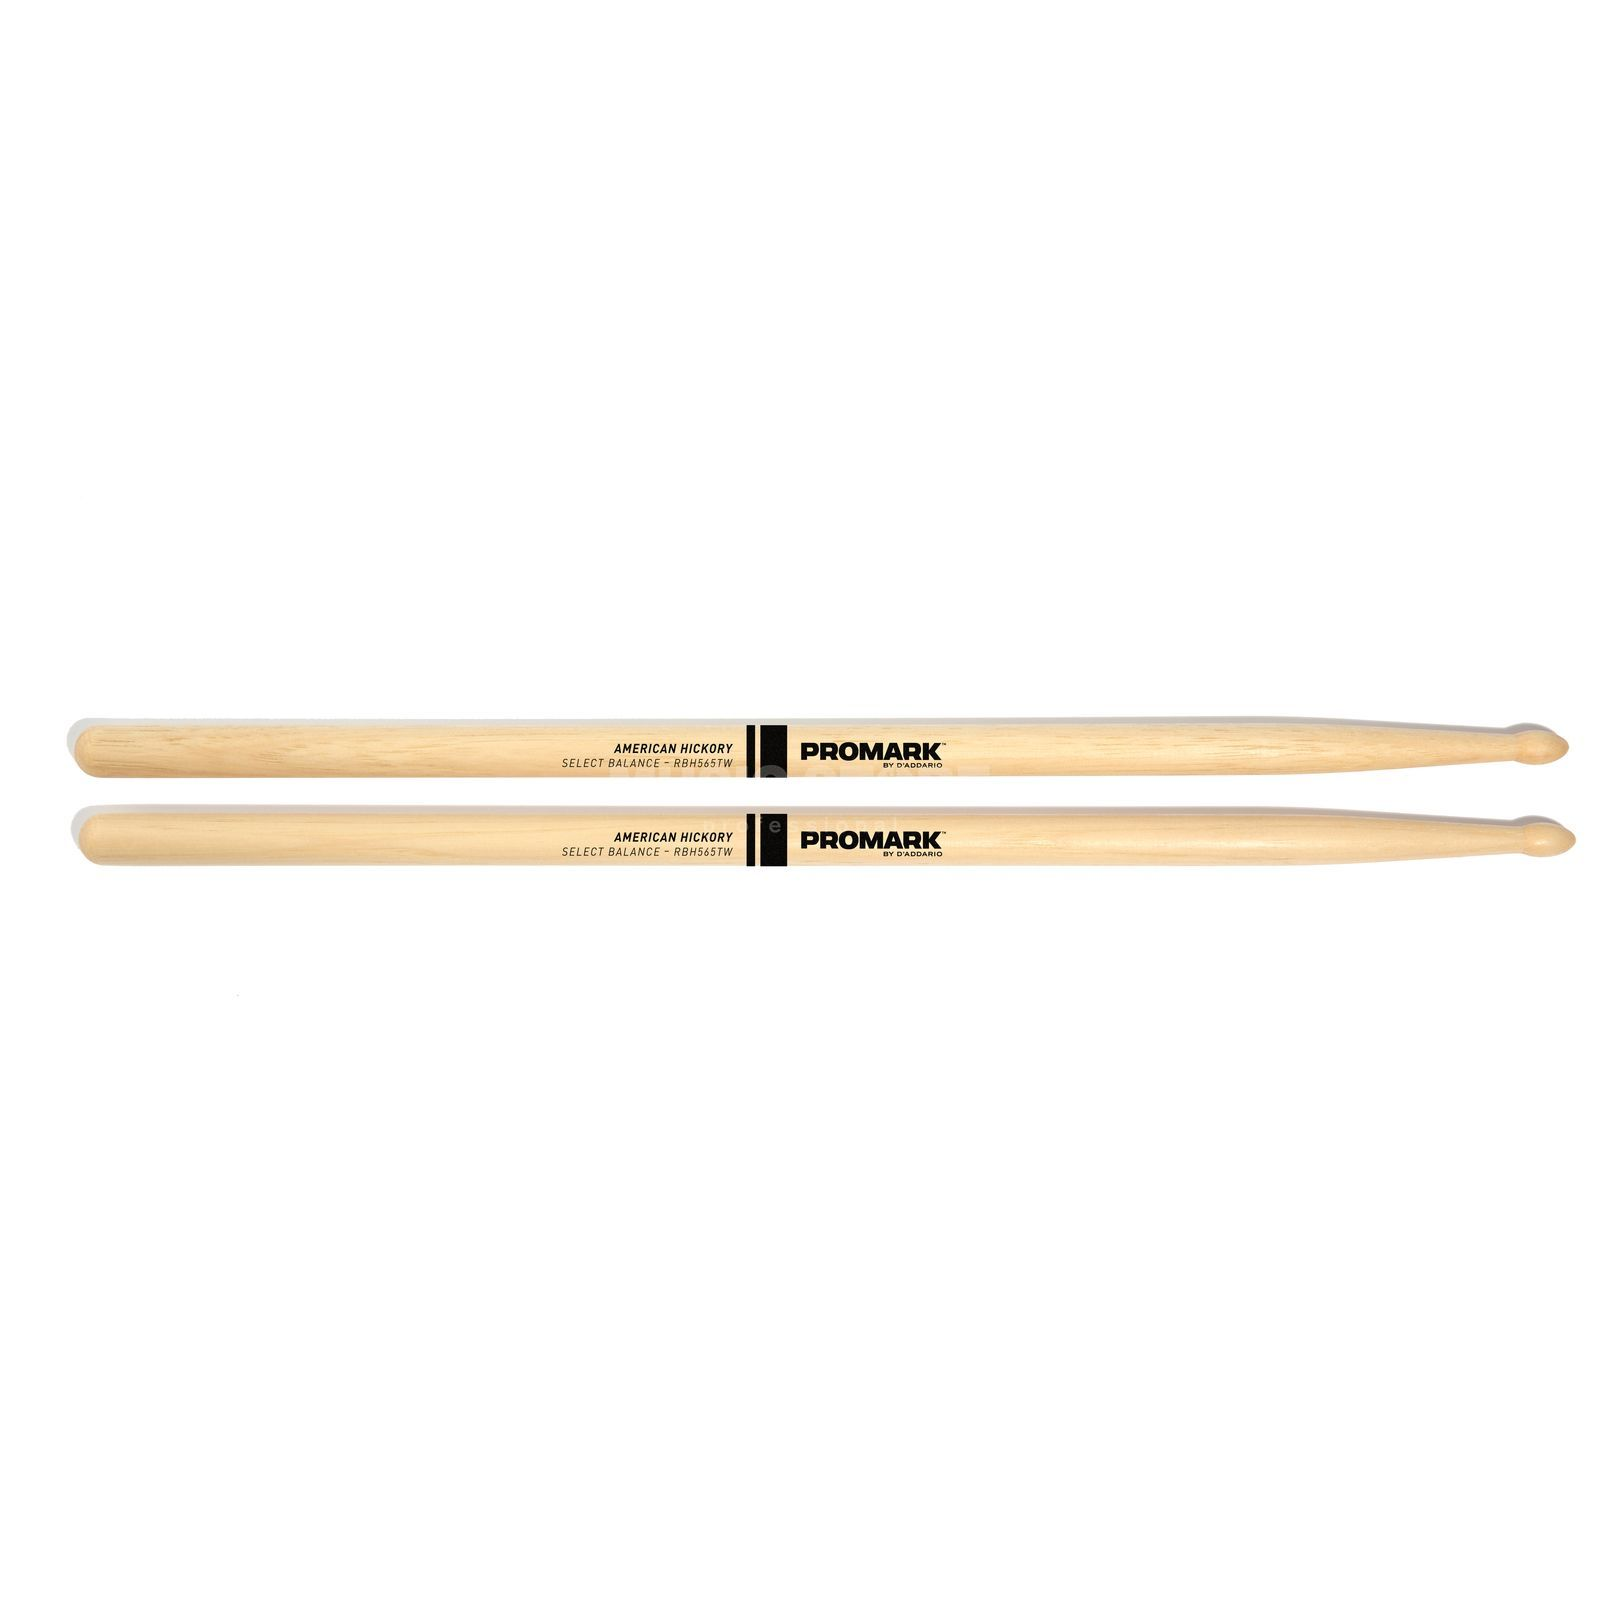 PRO-MARK Select Balance Sticks RBH565TW Rebound Balance, Wood Tip Produktbild